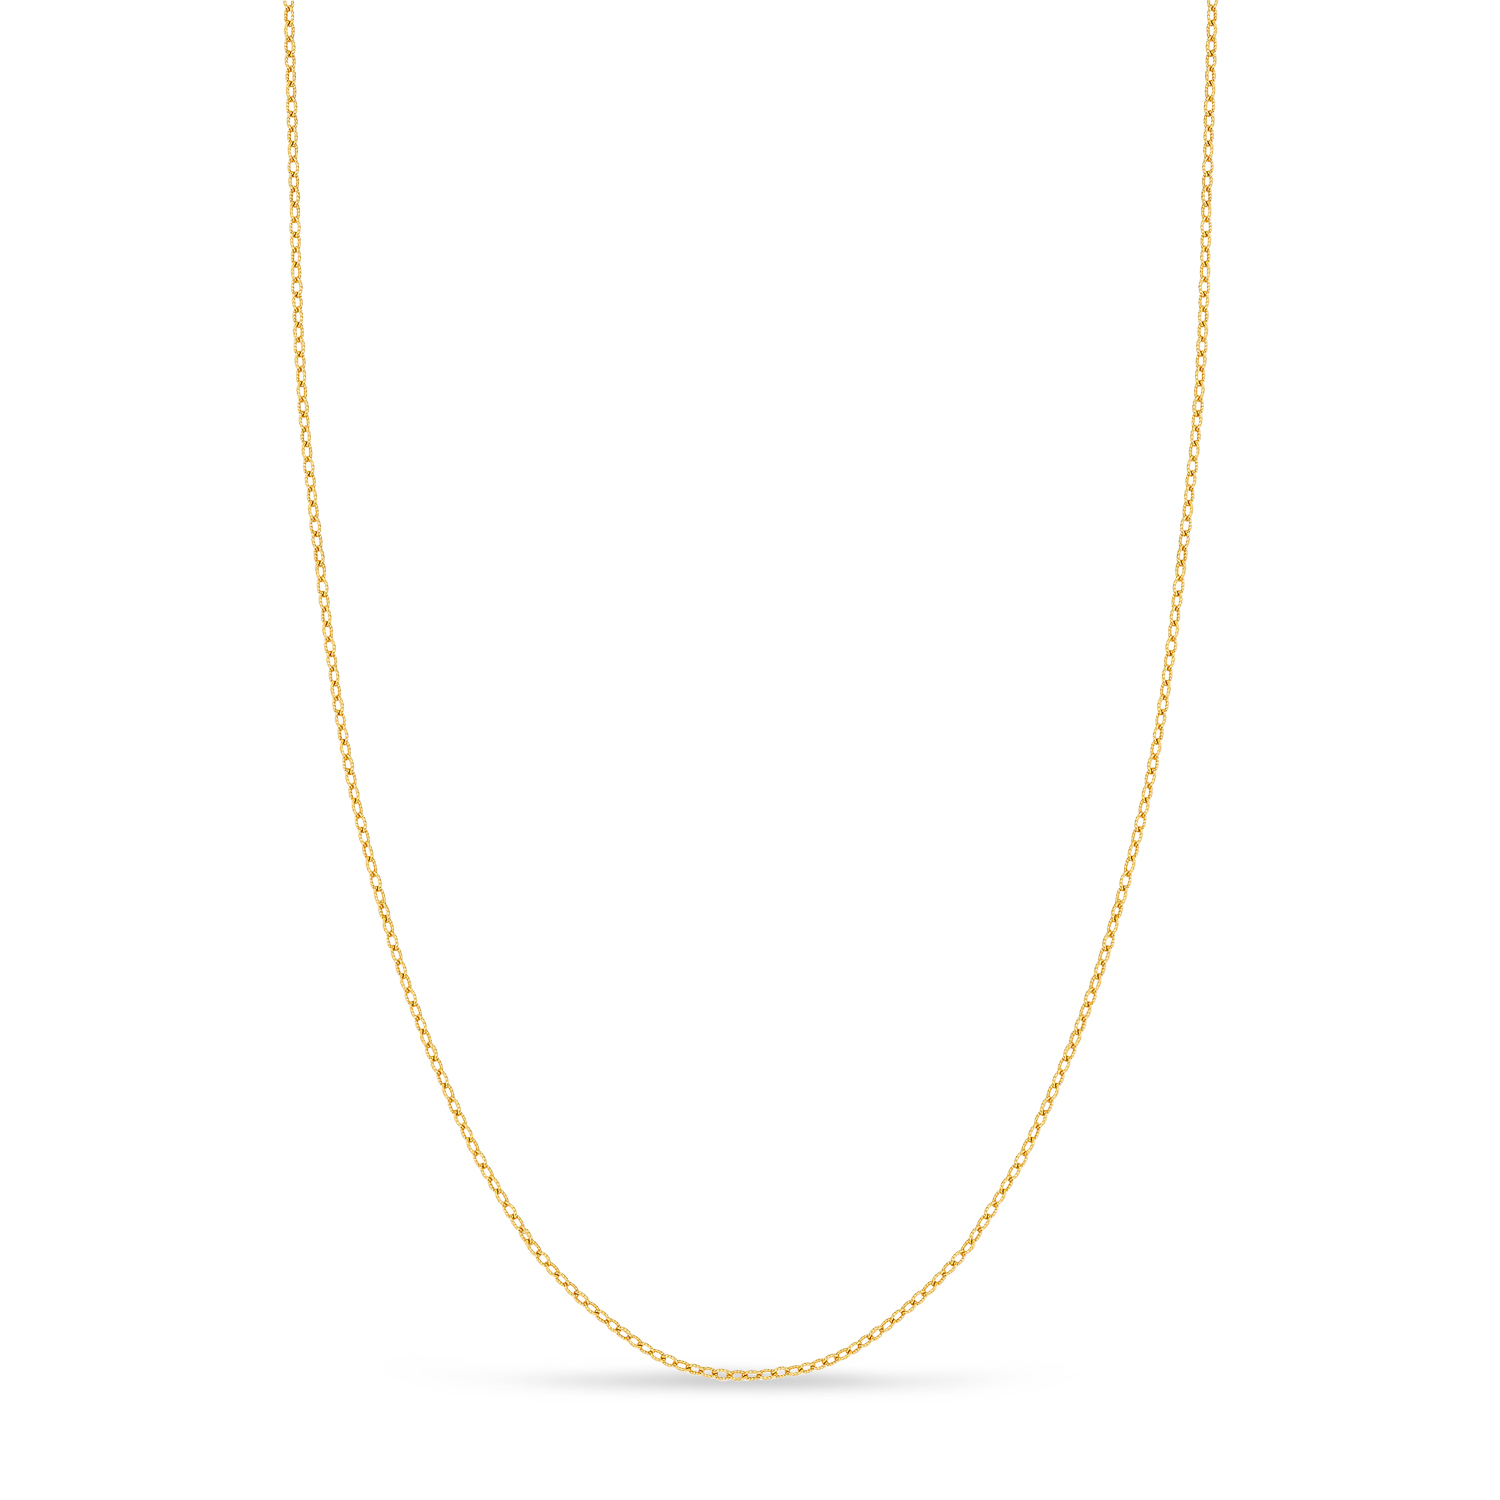 Designer Rolo Chain Necklace 14k Yellow Gold